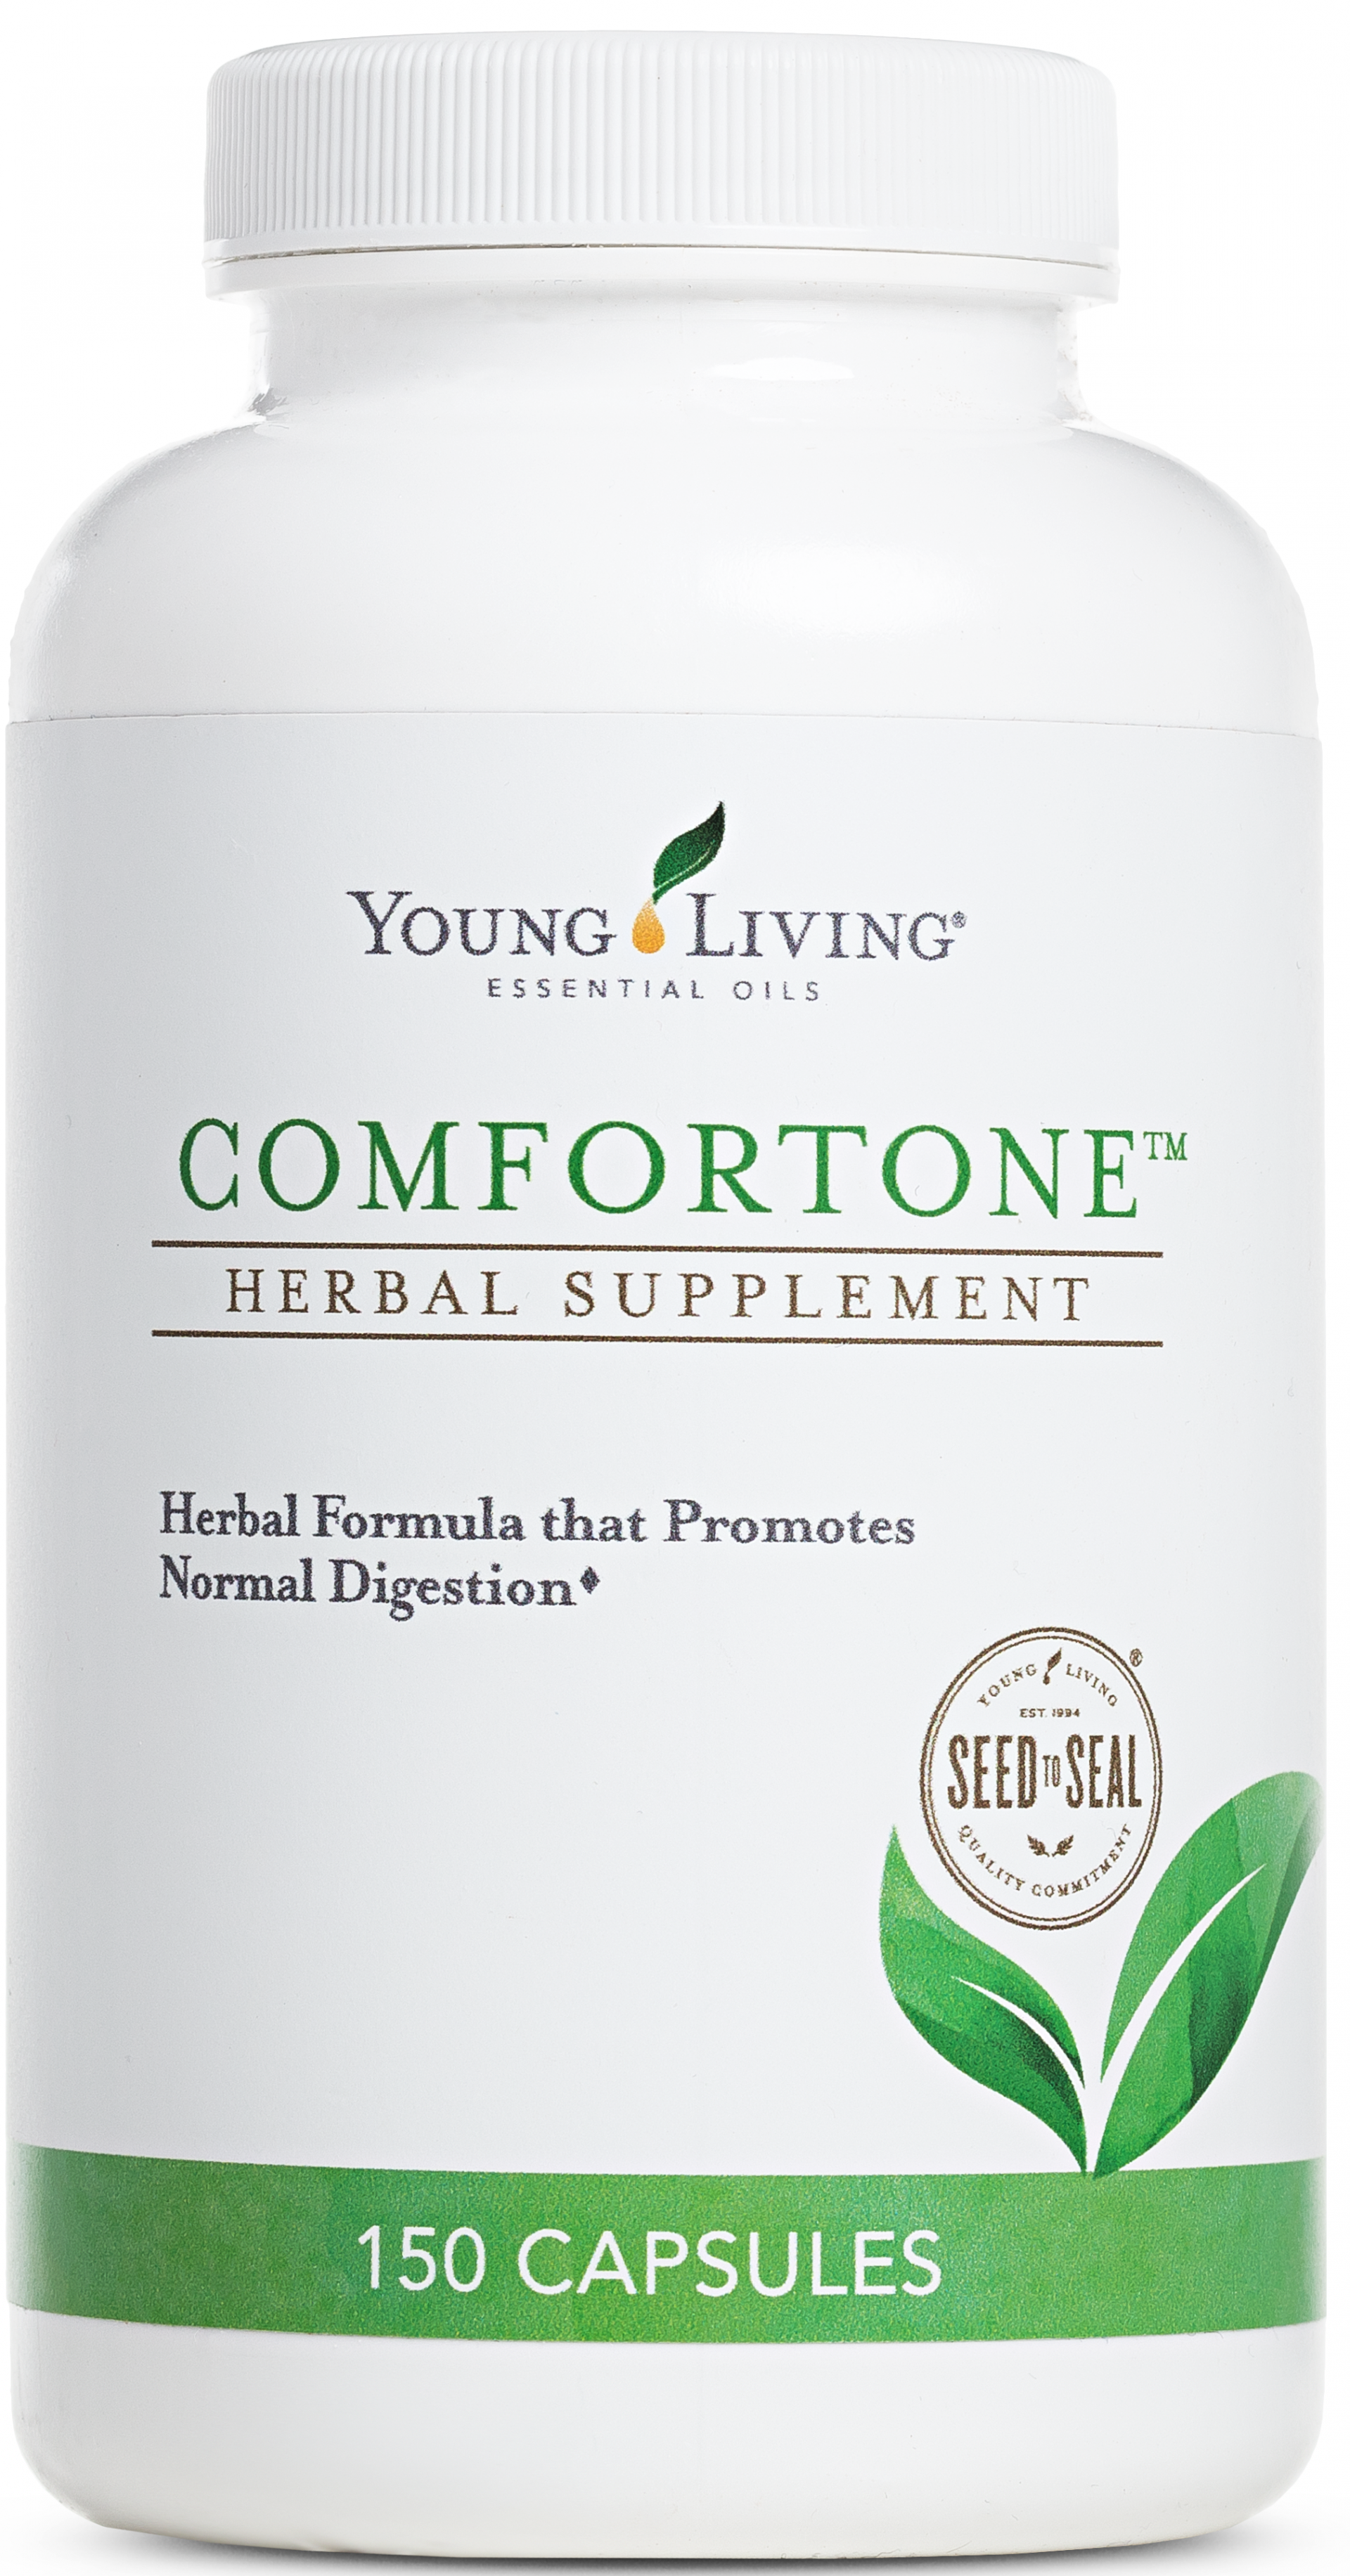 Comfortone Herbal Supplement for Normal Digestion